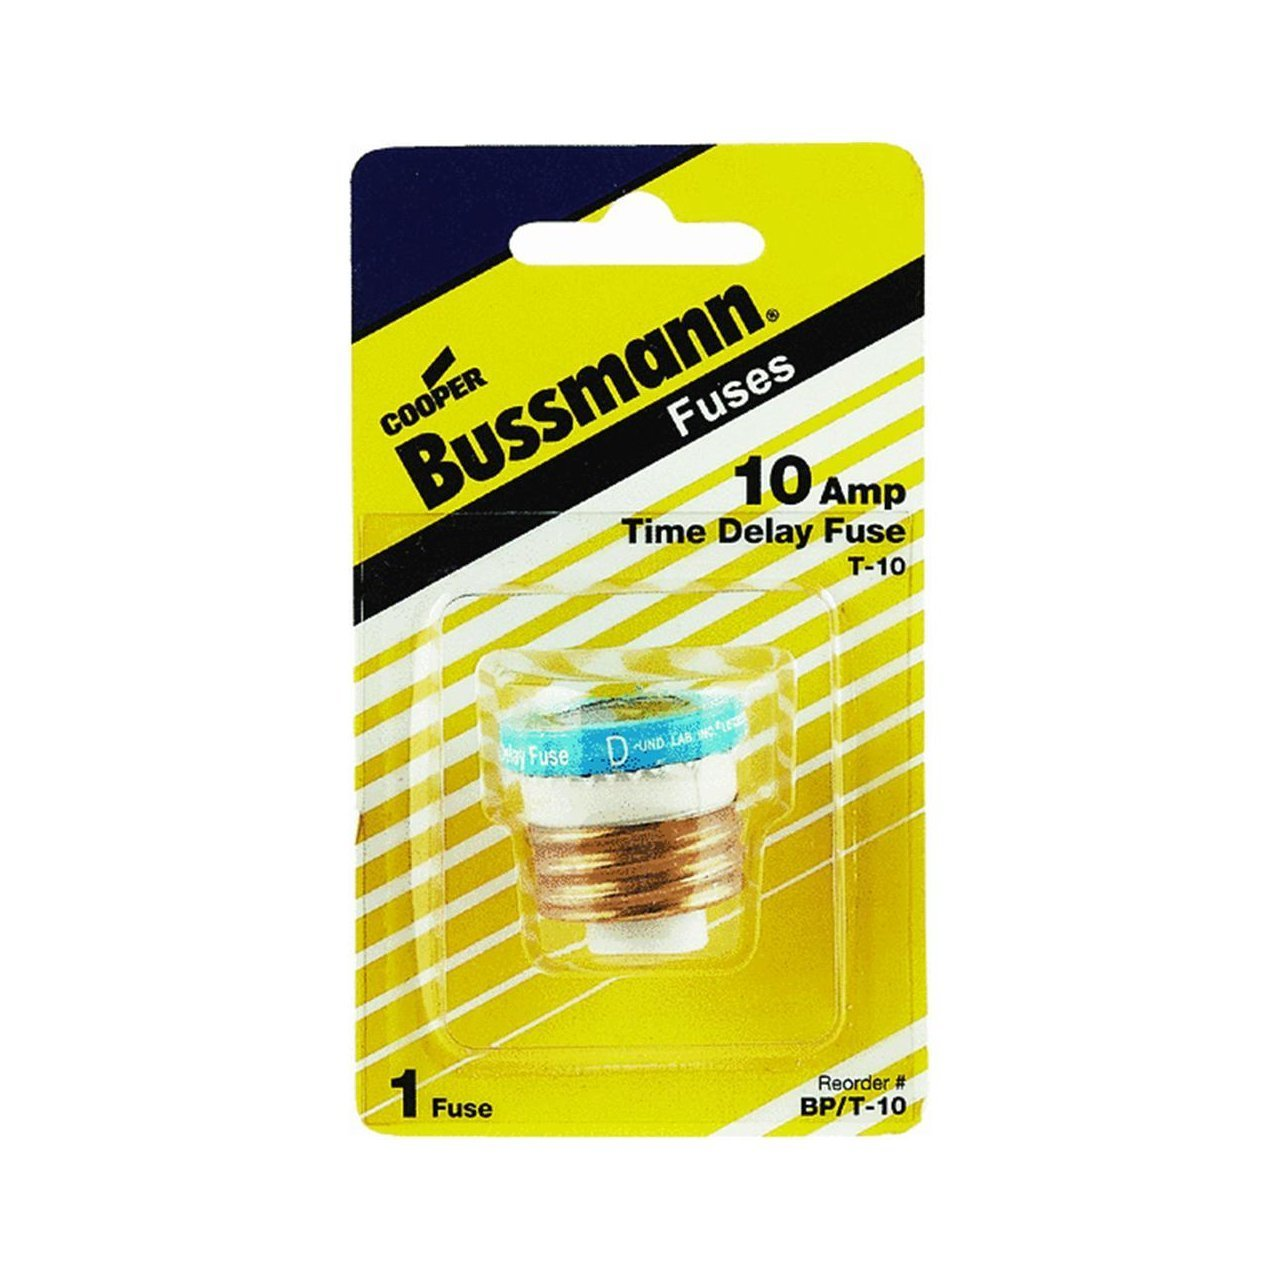 Bussmann T-10 10 Amp Type T Time-Delay Dual-Element Edison Base Plug Fuse, 125V UL Listed by Bussmann